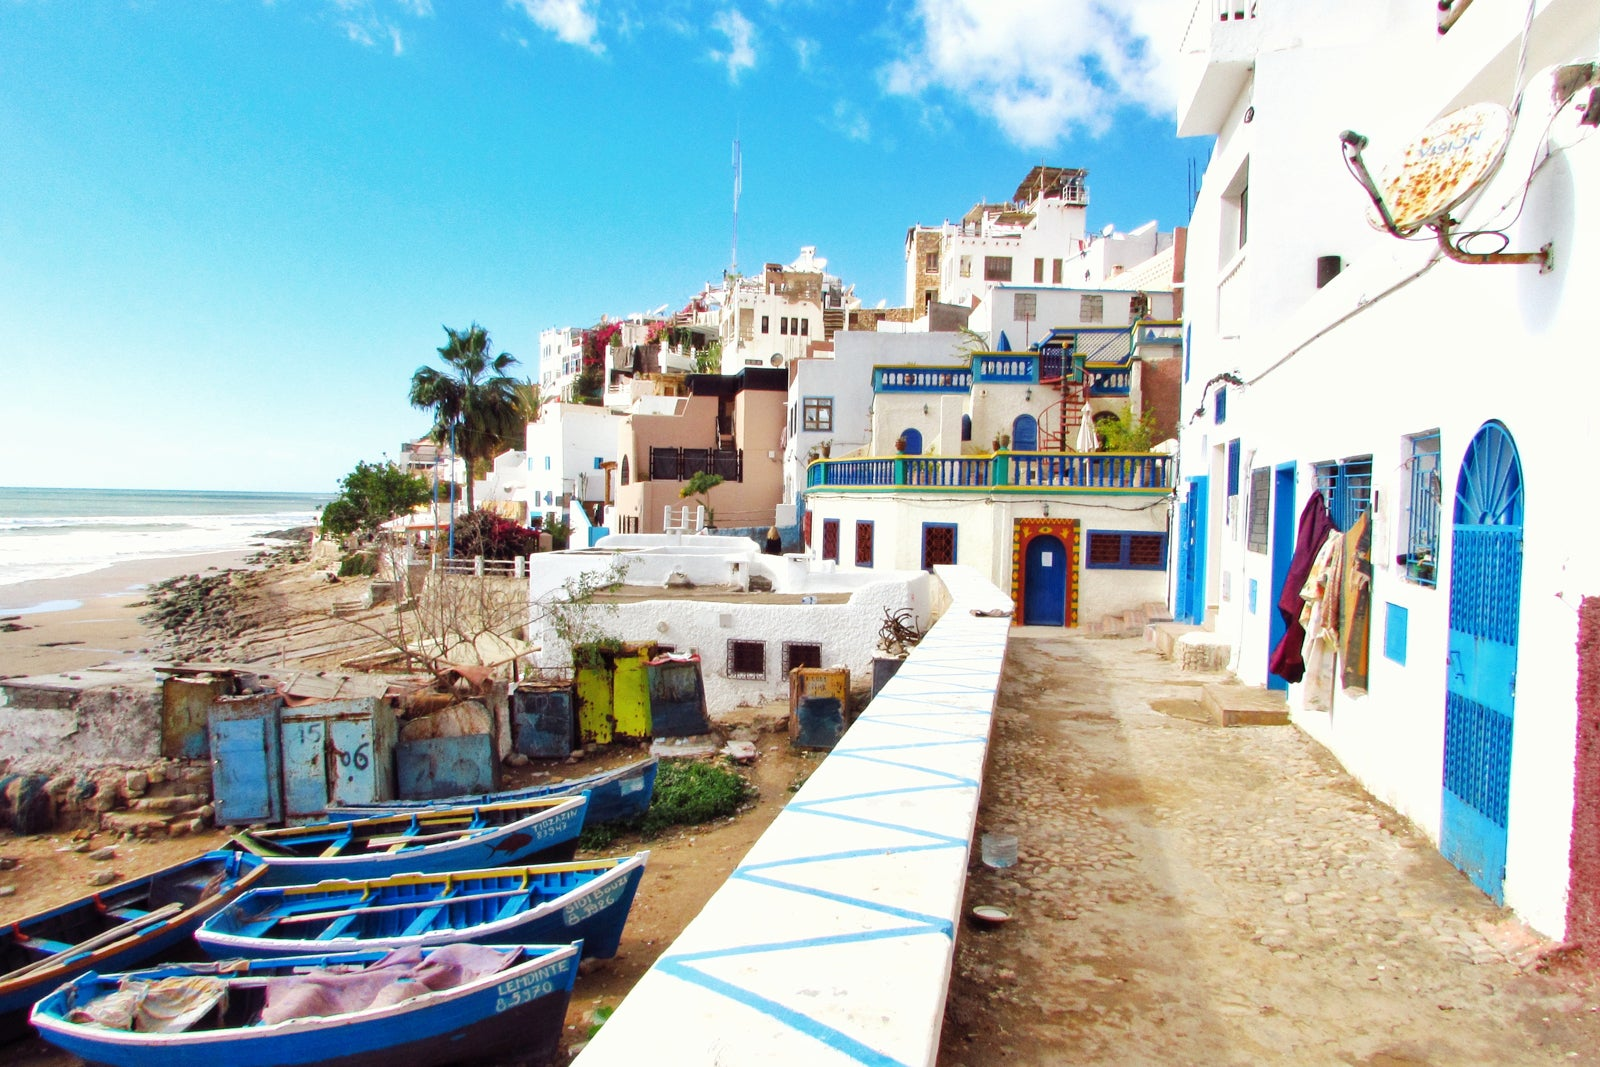 9 mistakes travelers often make in Morocco - The Points Guy